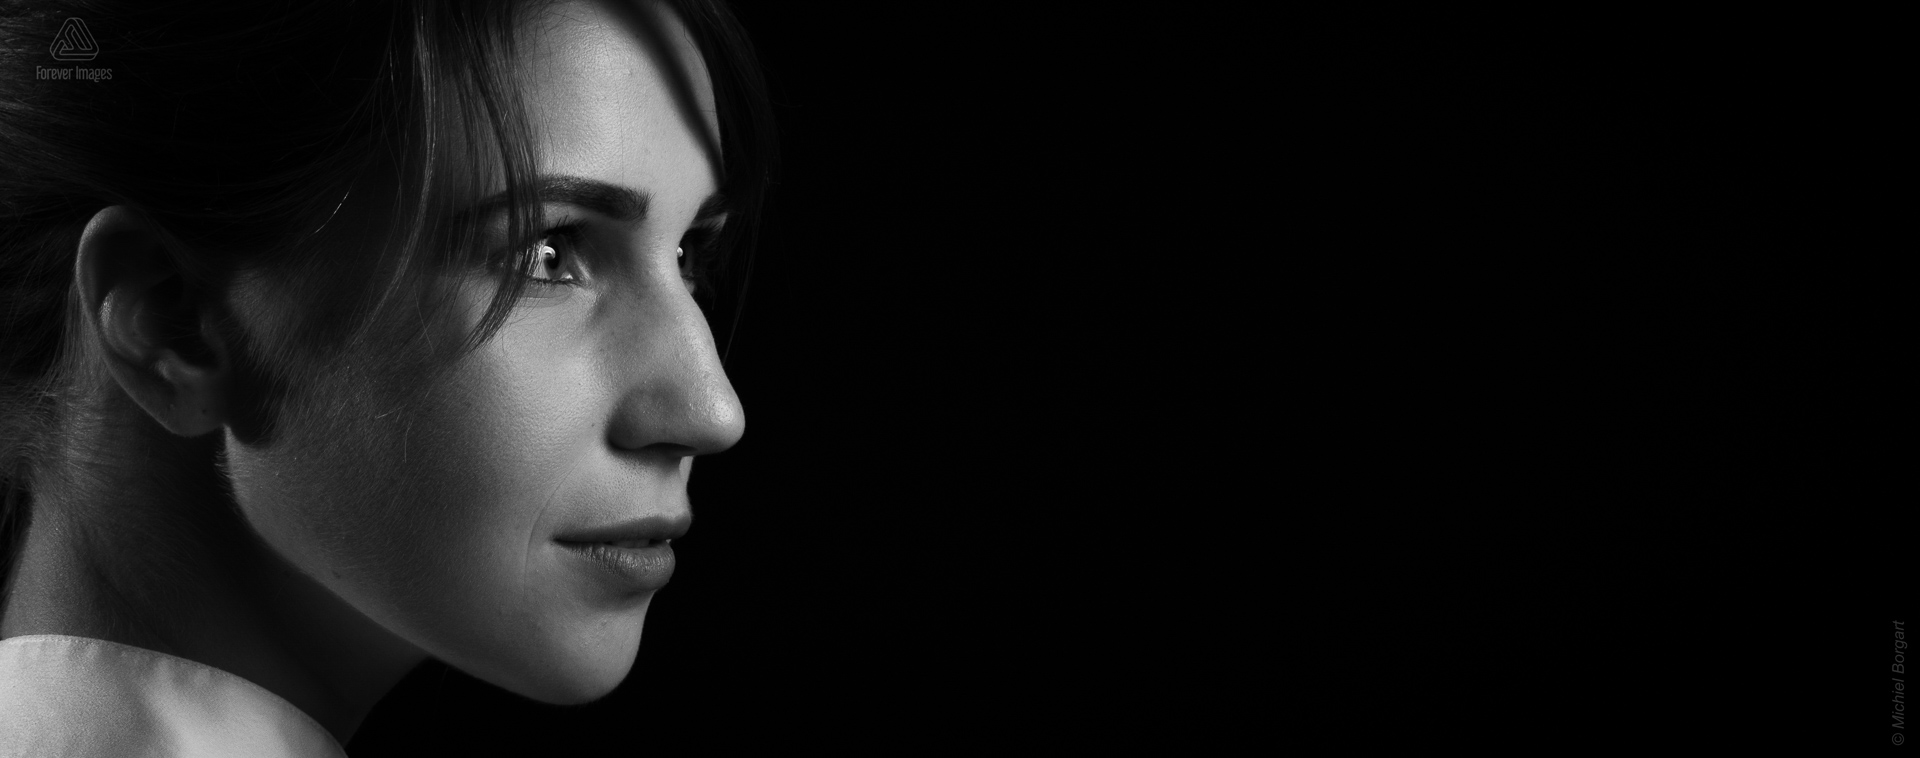 Portrait photo black and white young lady close-up looking aside low key | Noah Doornebal | Portrait Photographer Michiel Borgart - Forever Images.